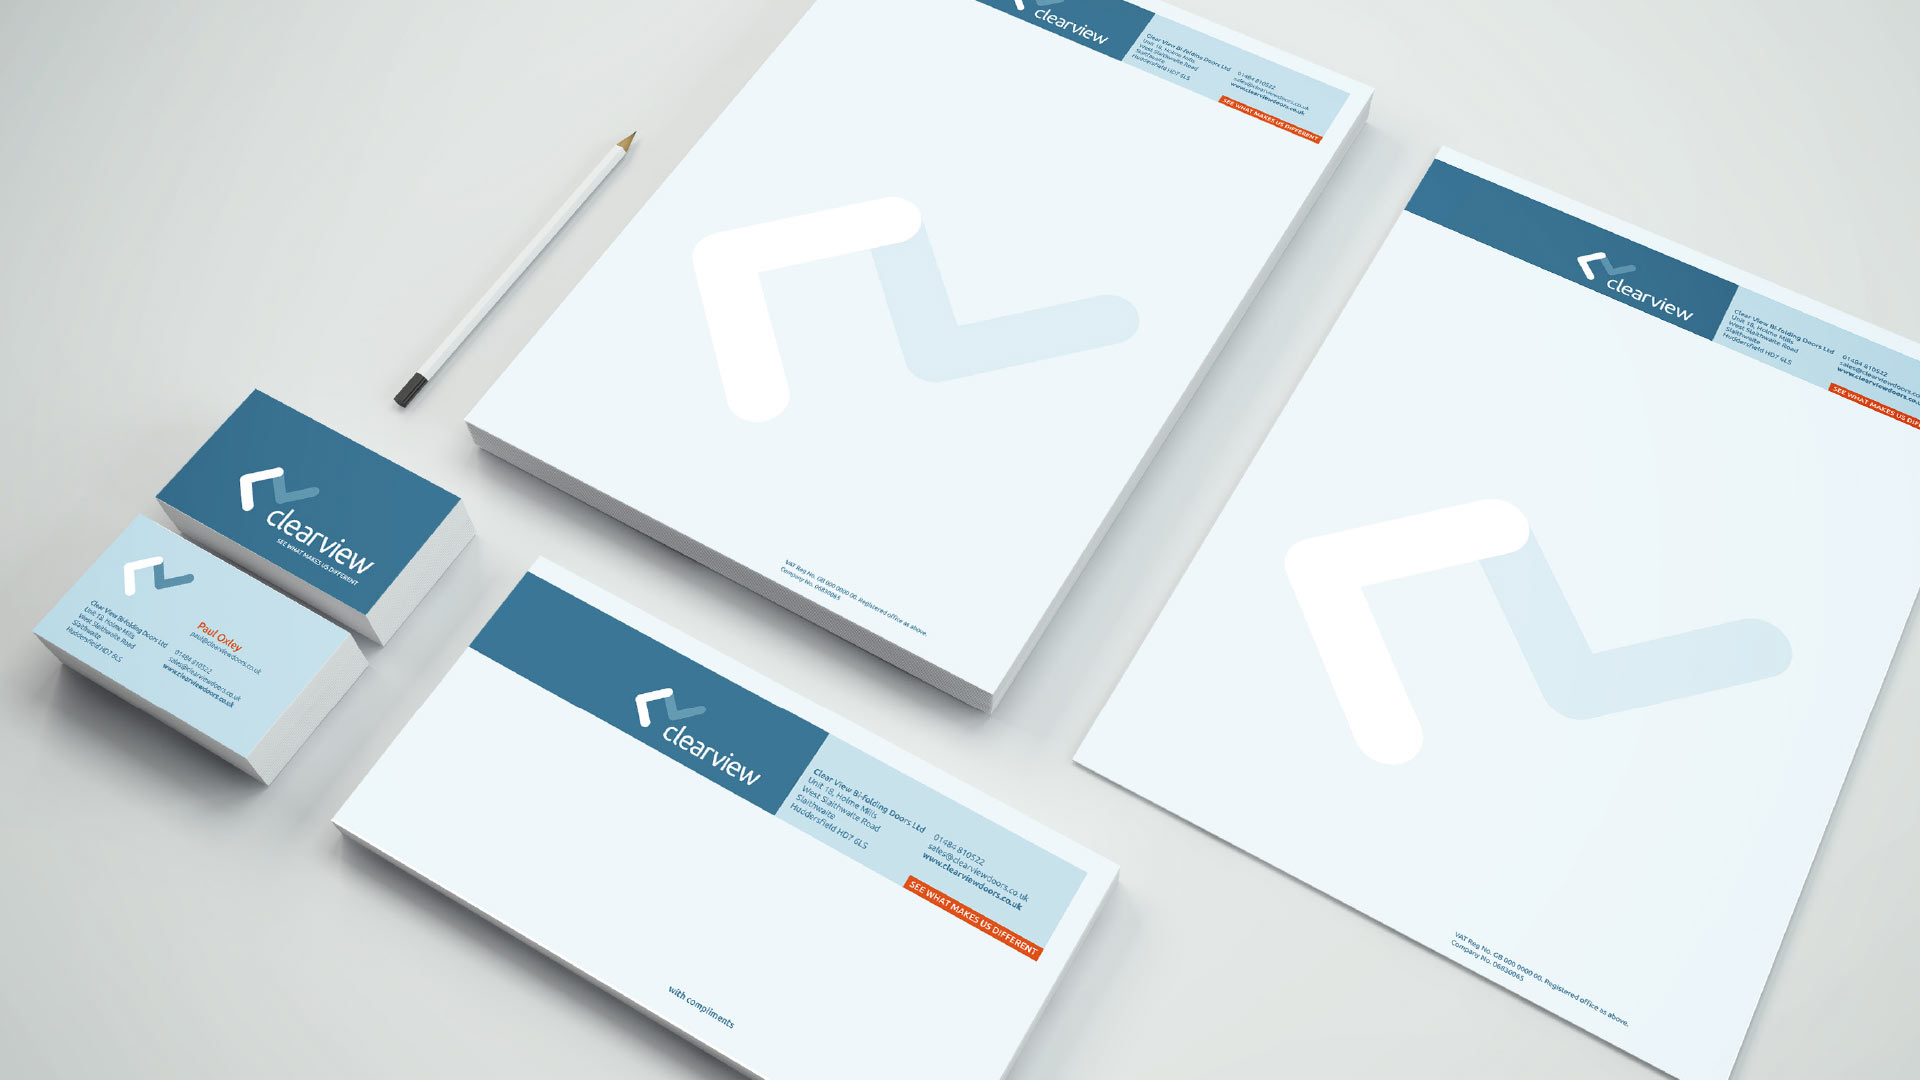 Clearview stationery